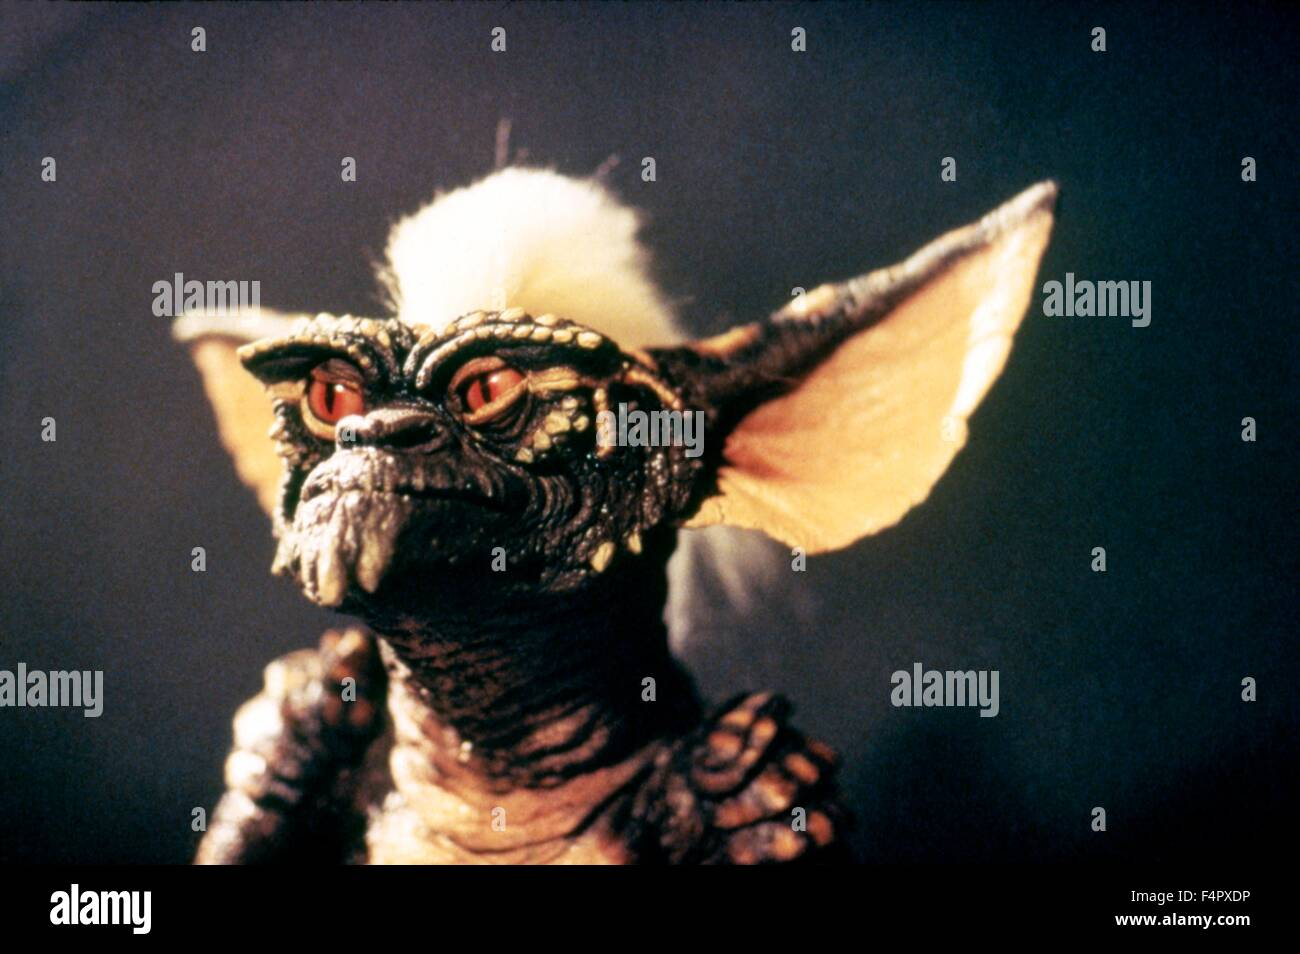 Gremlins / 1984 / directed by Joe Dante / [Warner Bros. Pictures / Amblin E] - Stock Image